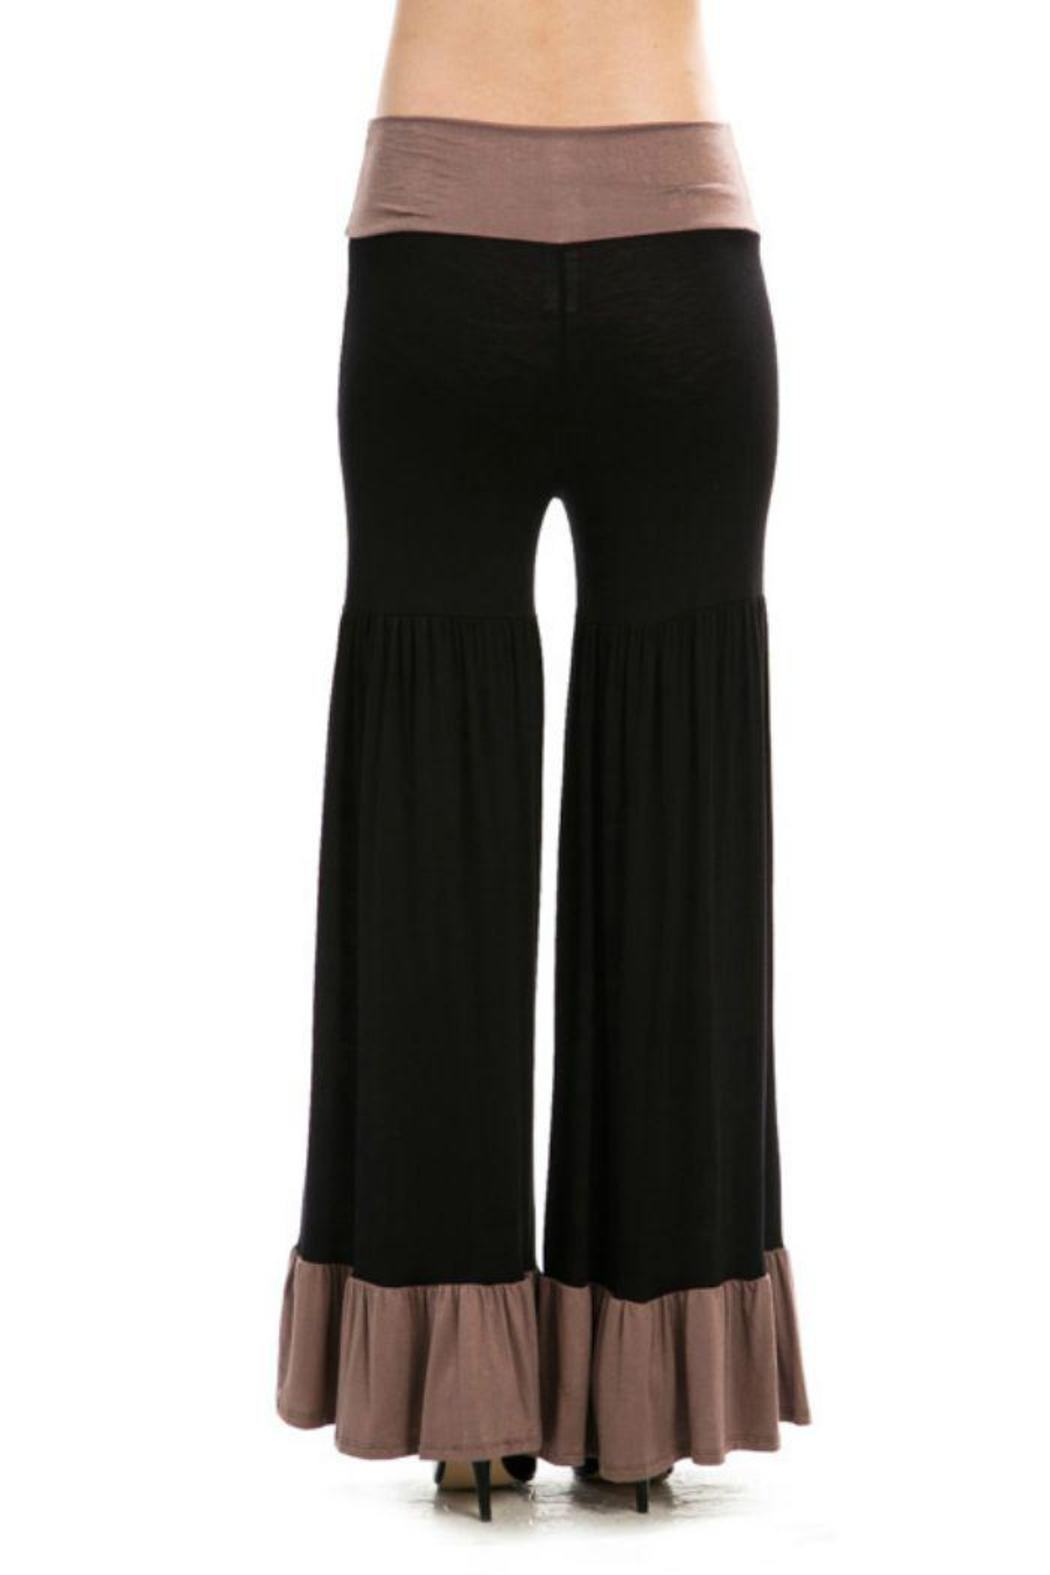 Flared Ruffle Pants from Alabama by A Dash of Fashion ...